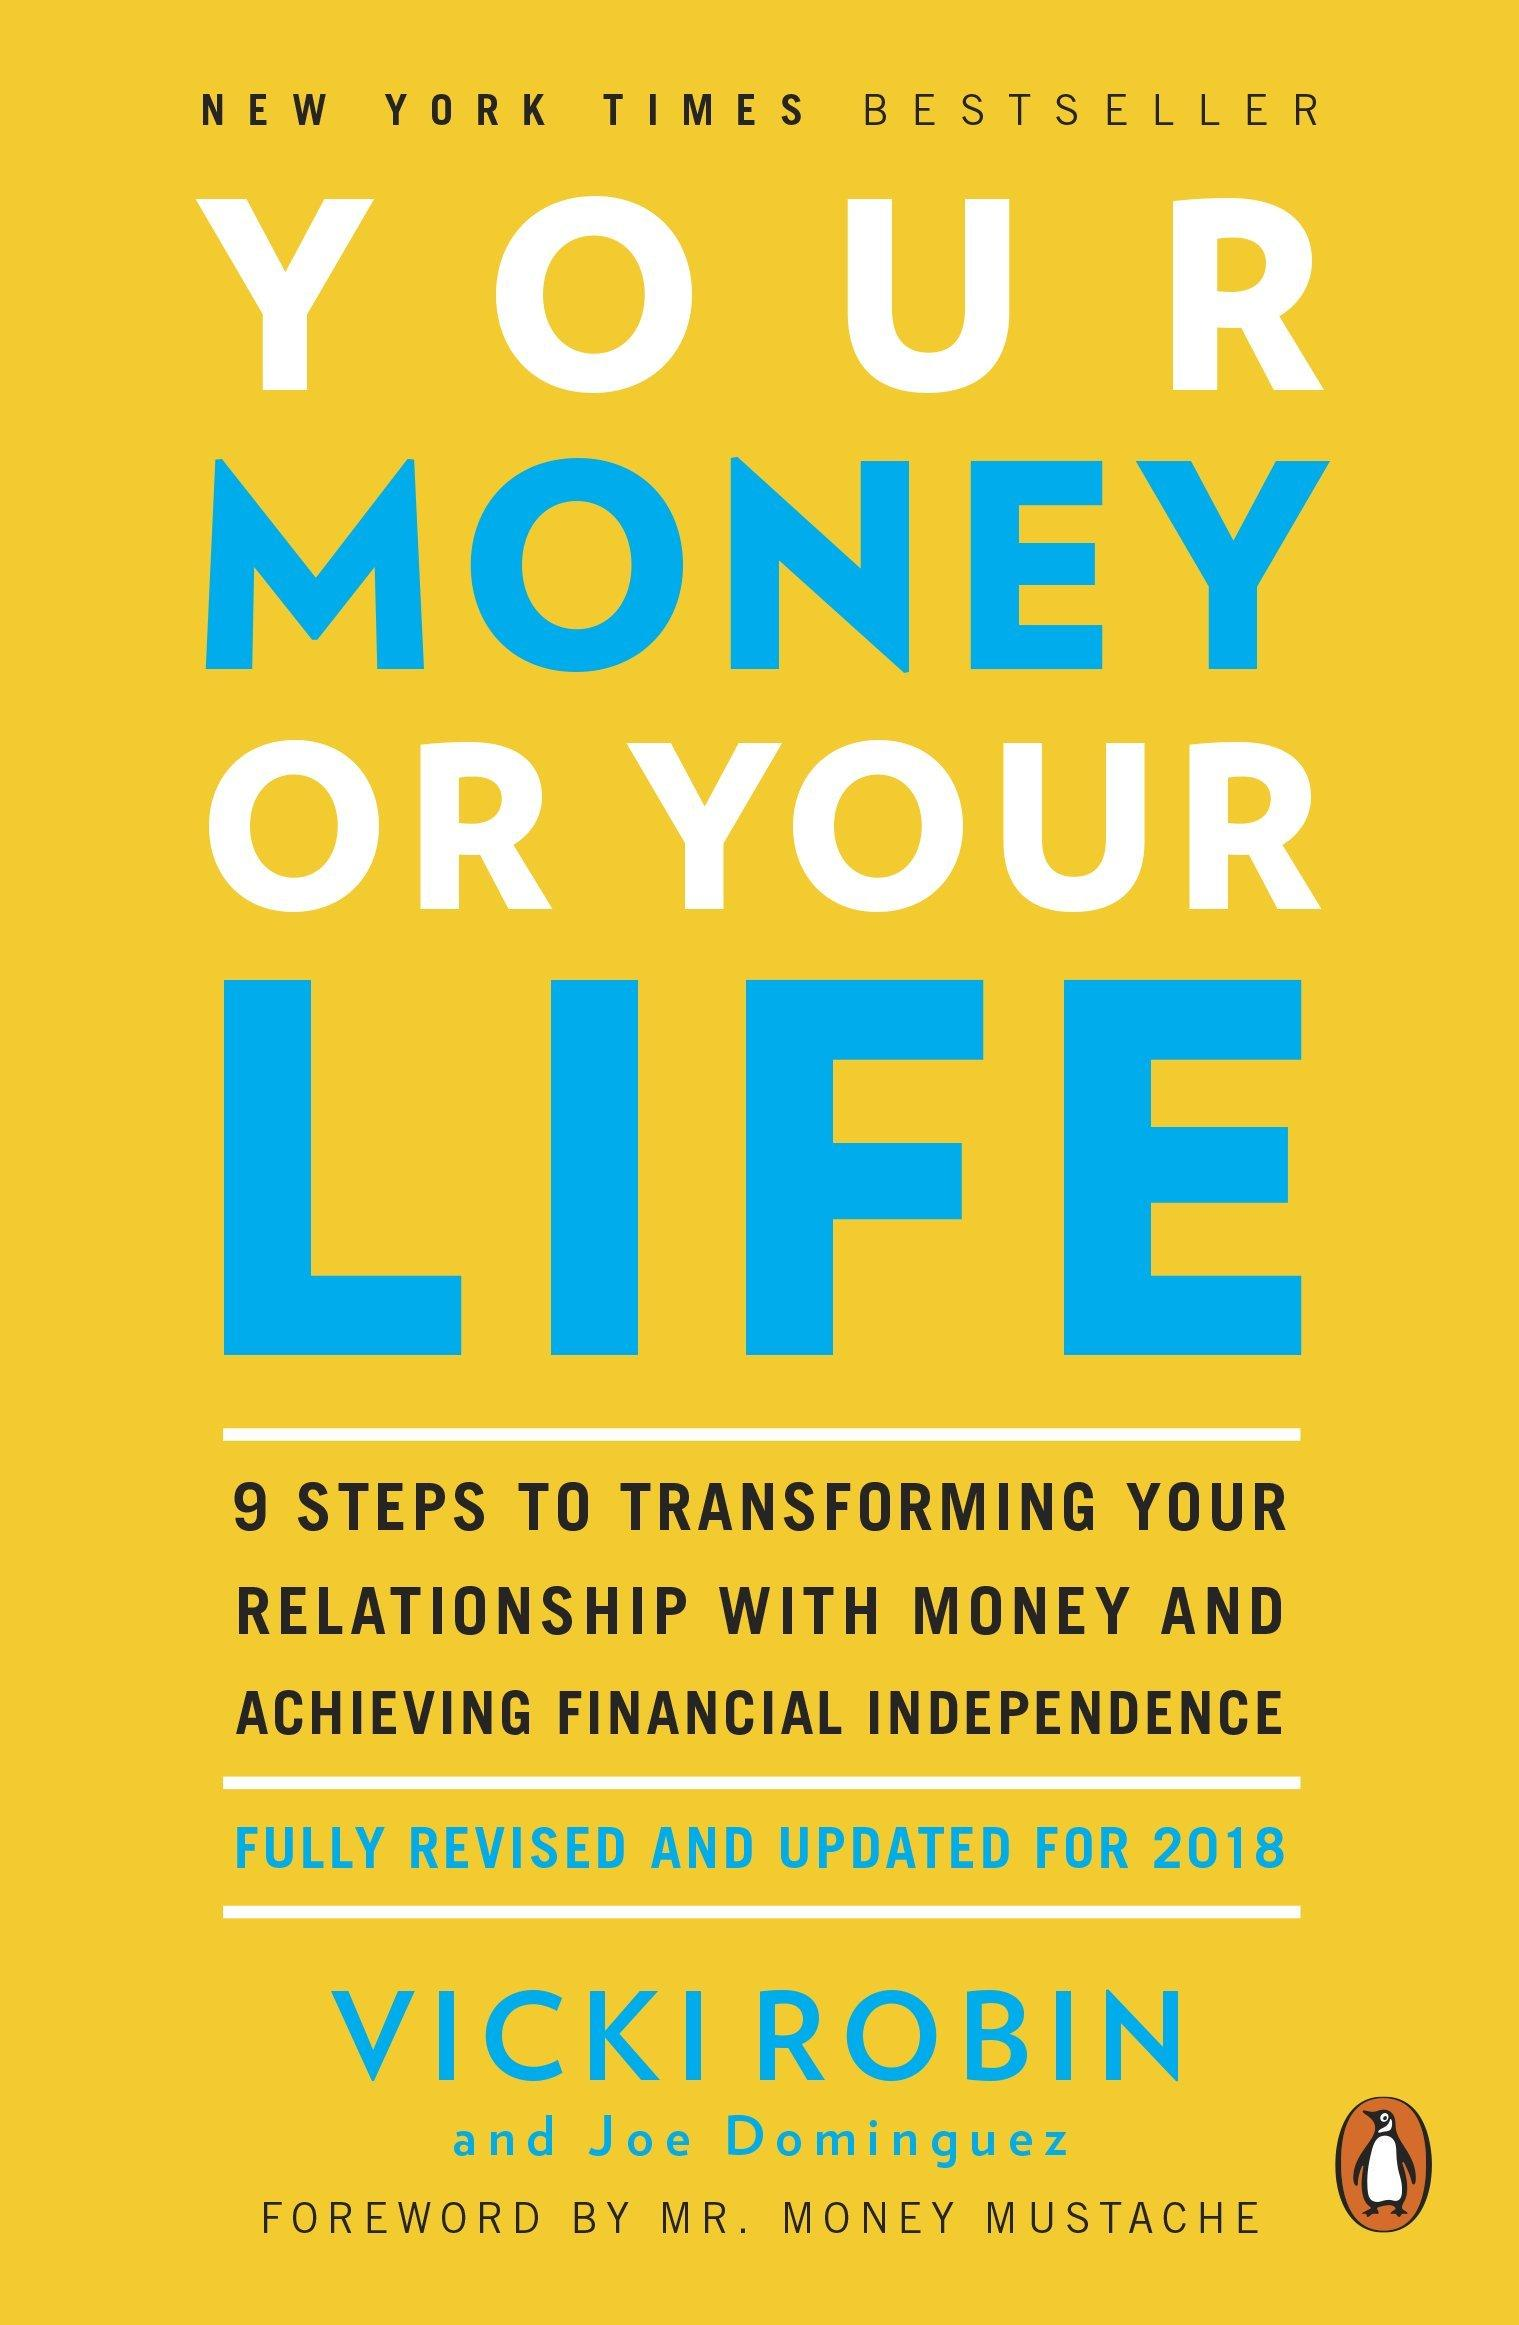 Your money or your life by